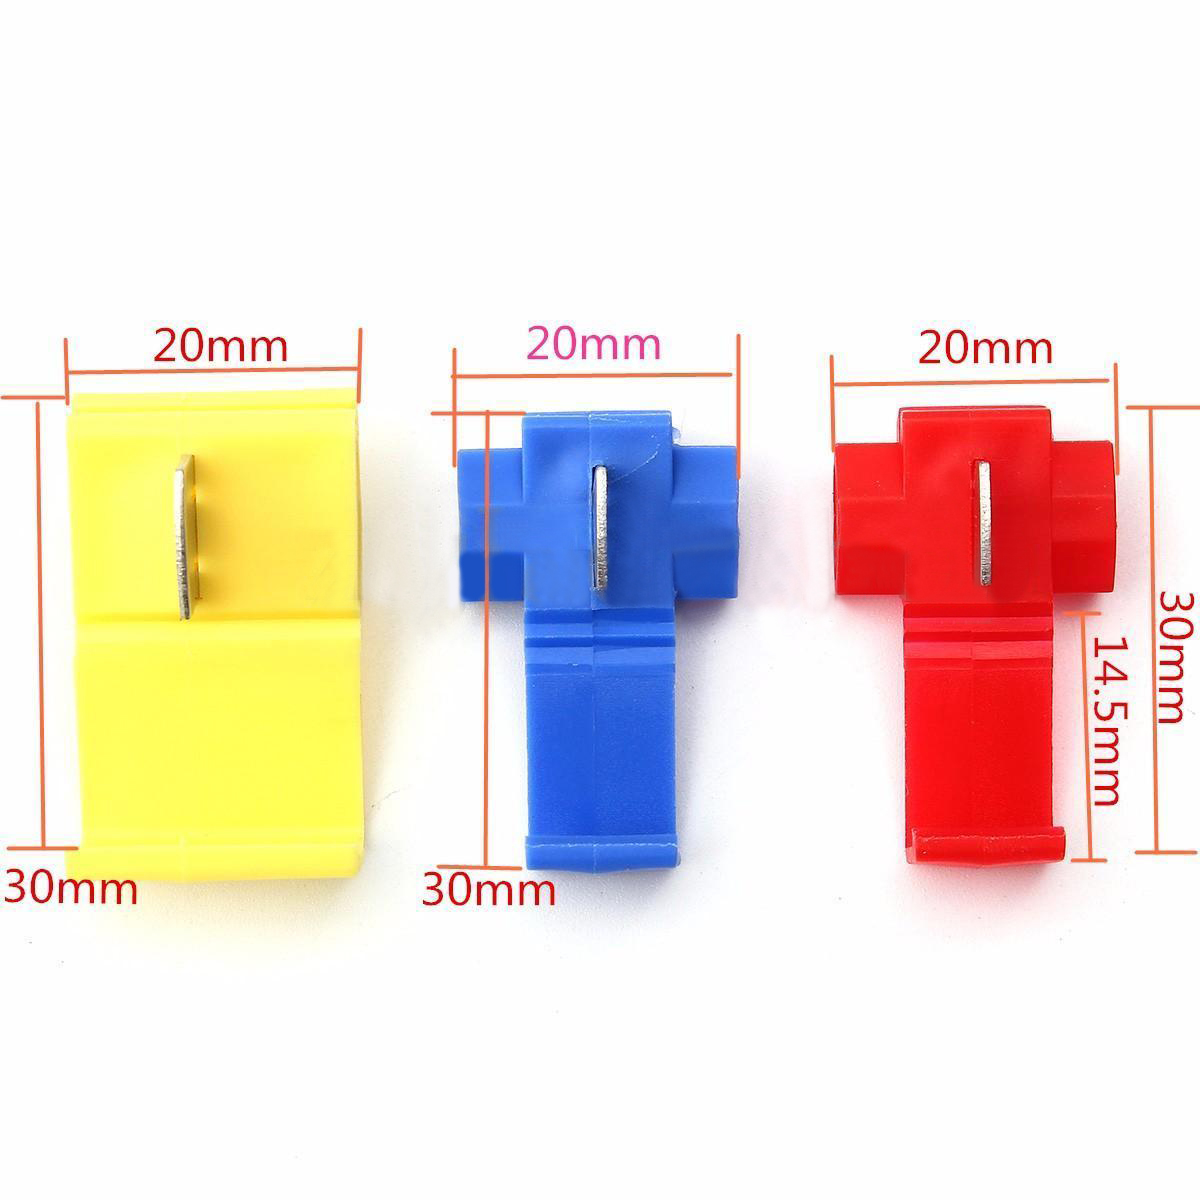 125pcs New Scotch Lock Quick Splice Tap Wire Connectors Terminals 12-10 16-14 22-18 AWG Red Yellow Blue Mayitr 25pcs scotch lock quick splice 12 10 awg wire connector yb